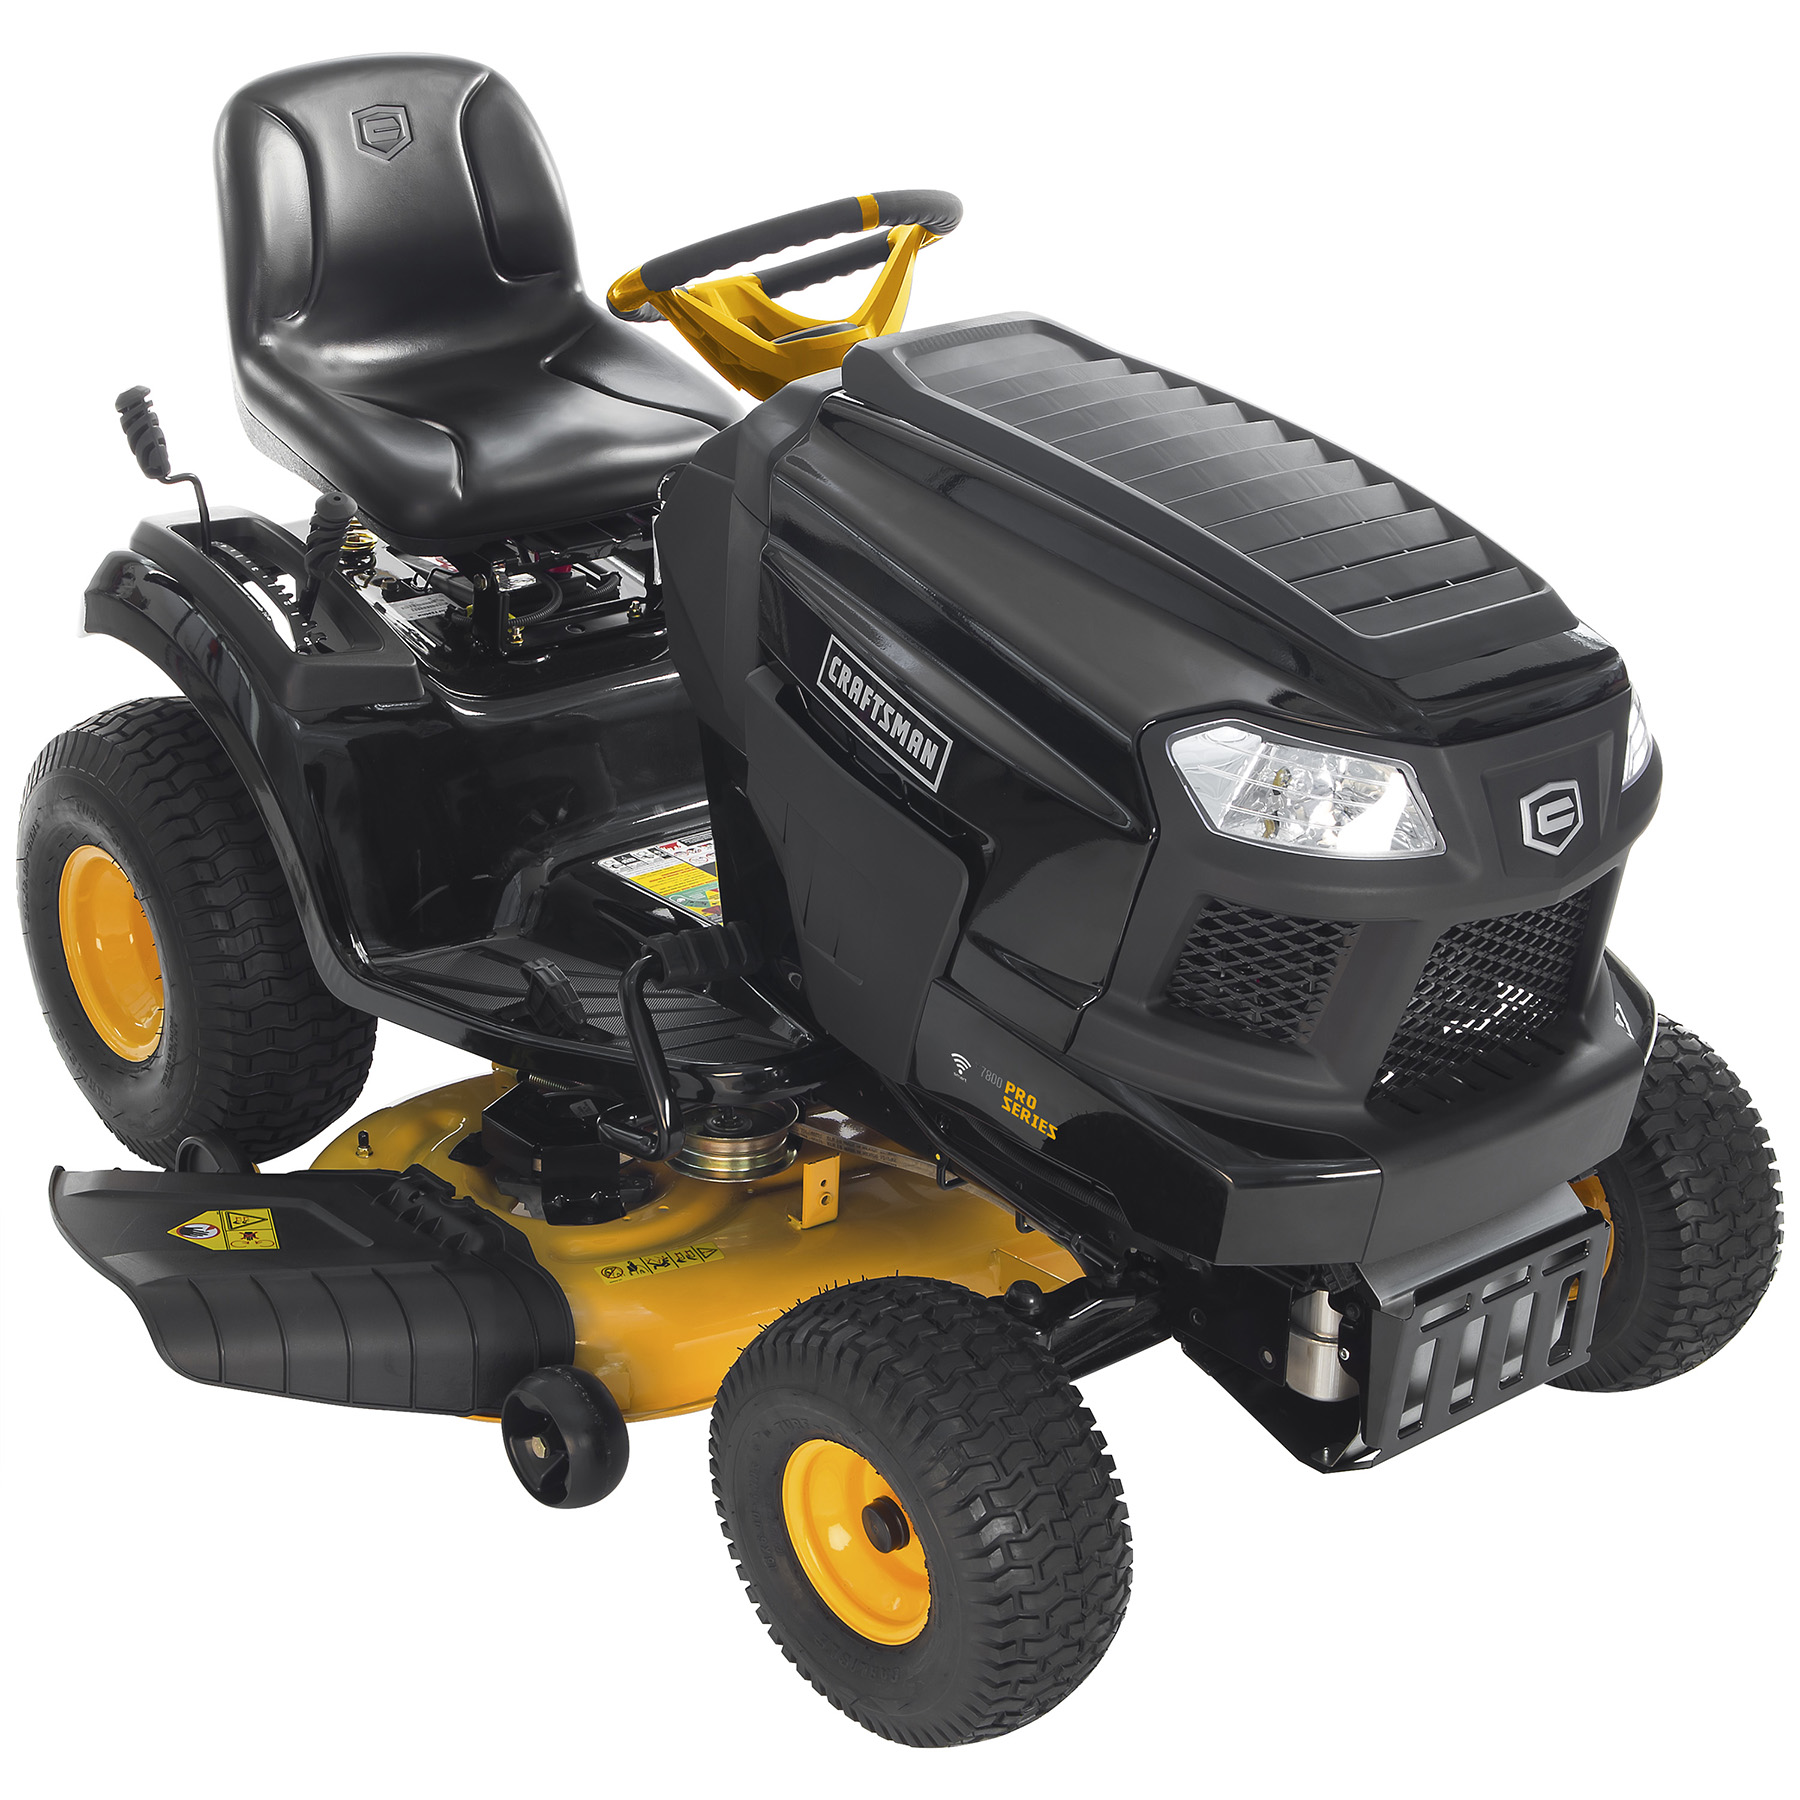 hight resolution of craftsman proseries 27038 42 20 hp kohler v twin riding mower with smart lawn technology